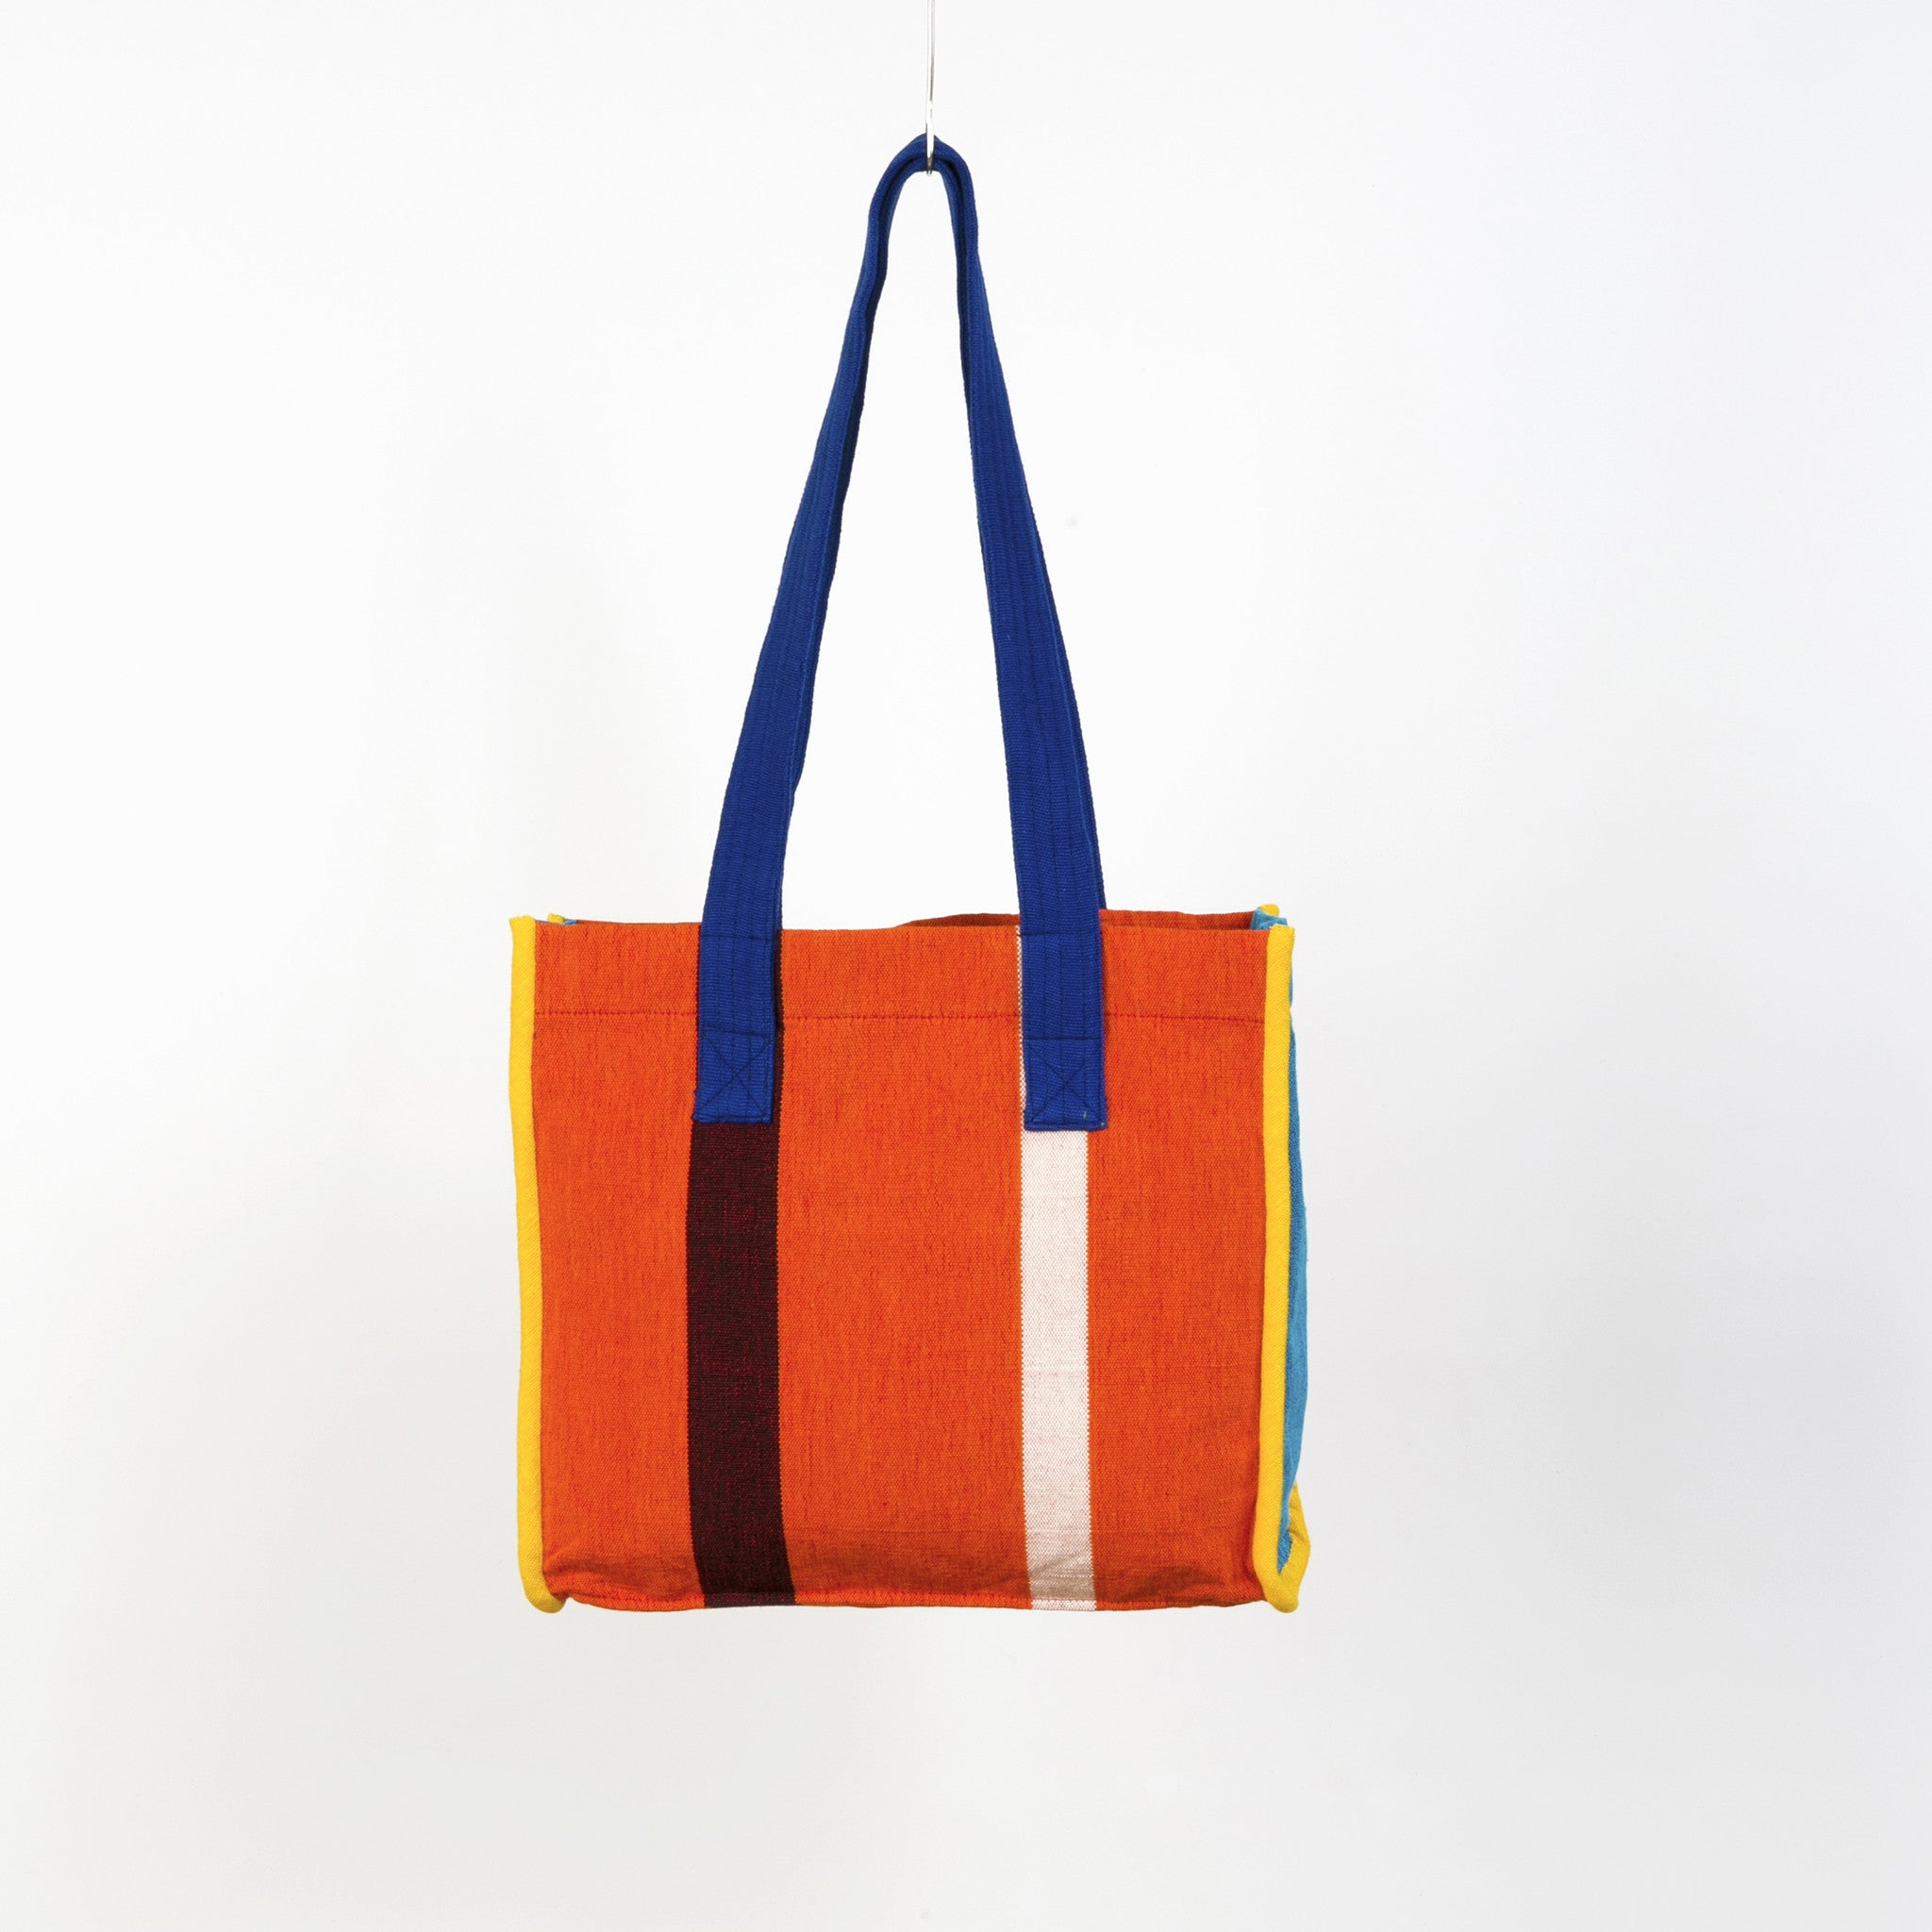 The Easy Breezy Tote - Pumpkin Spice fabric shown